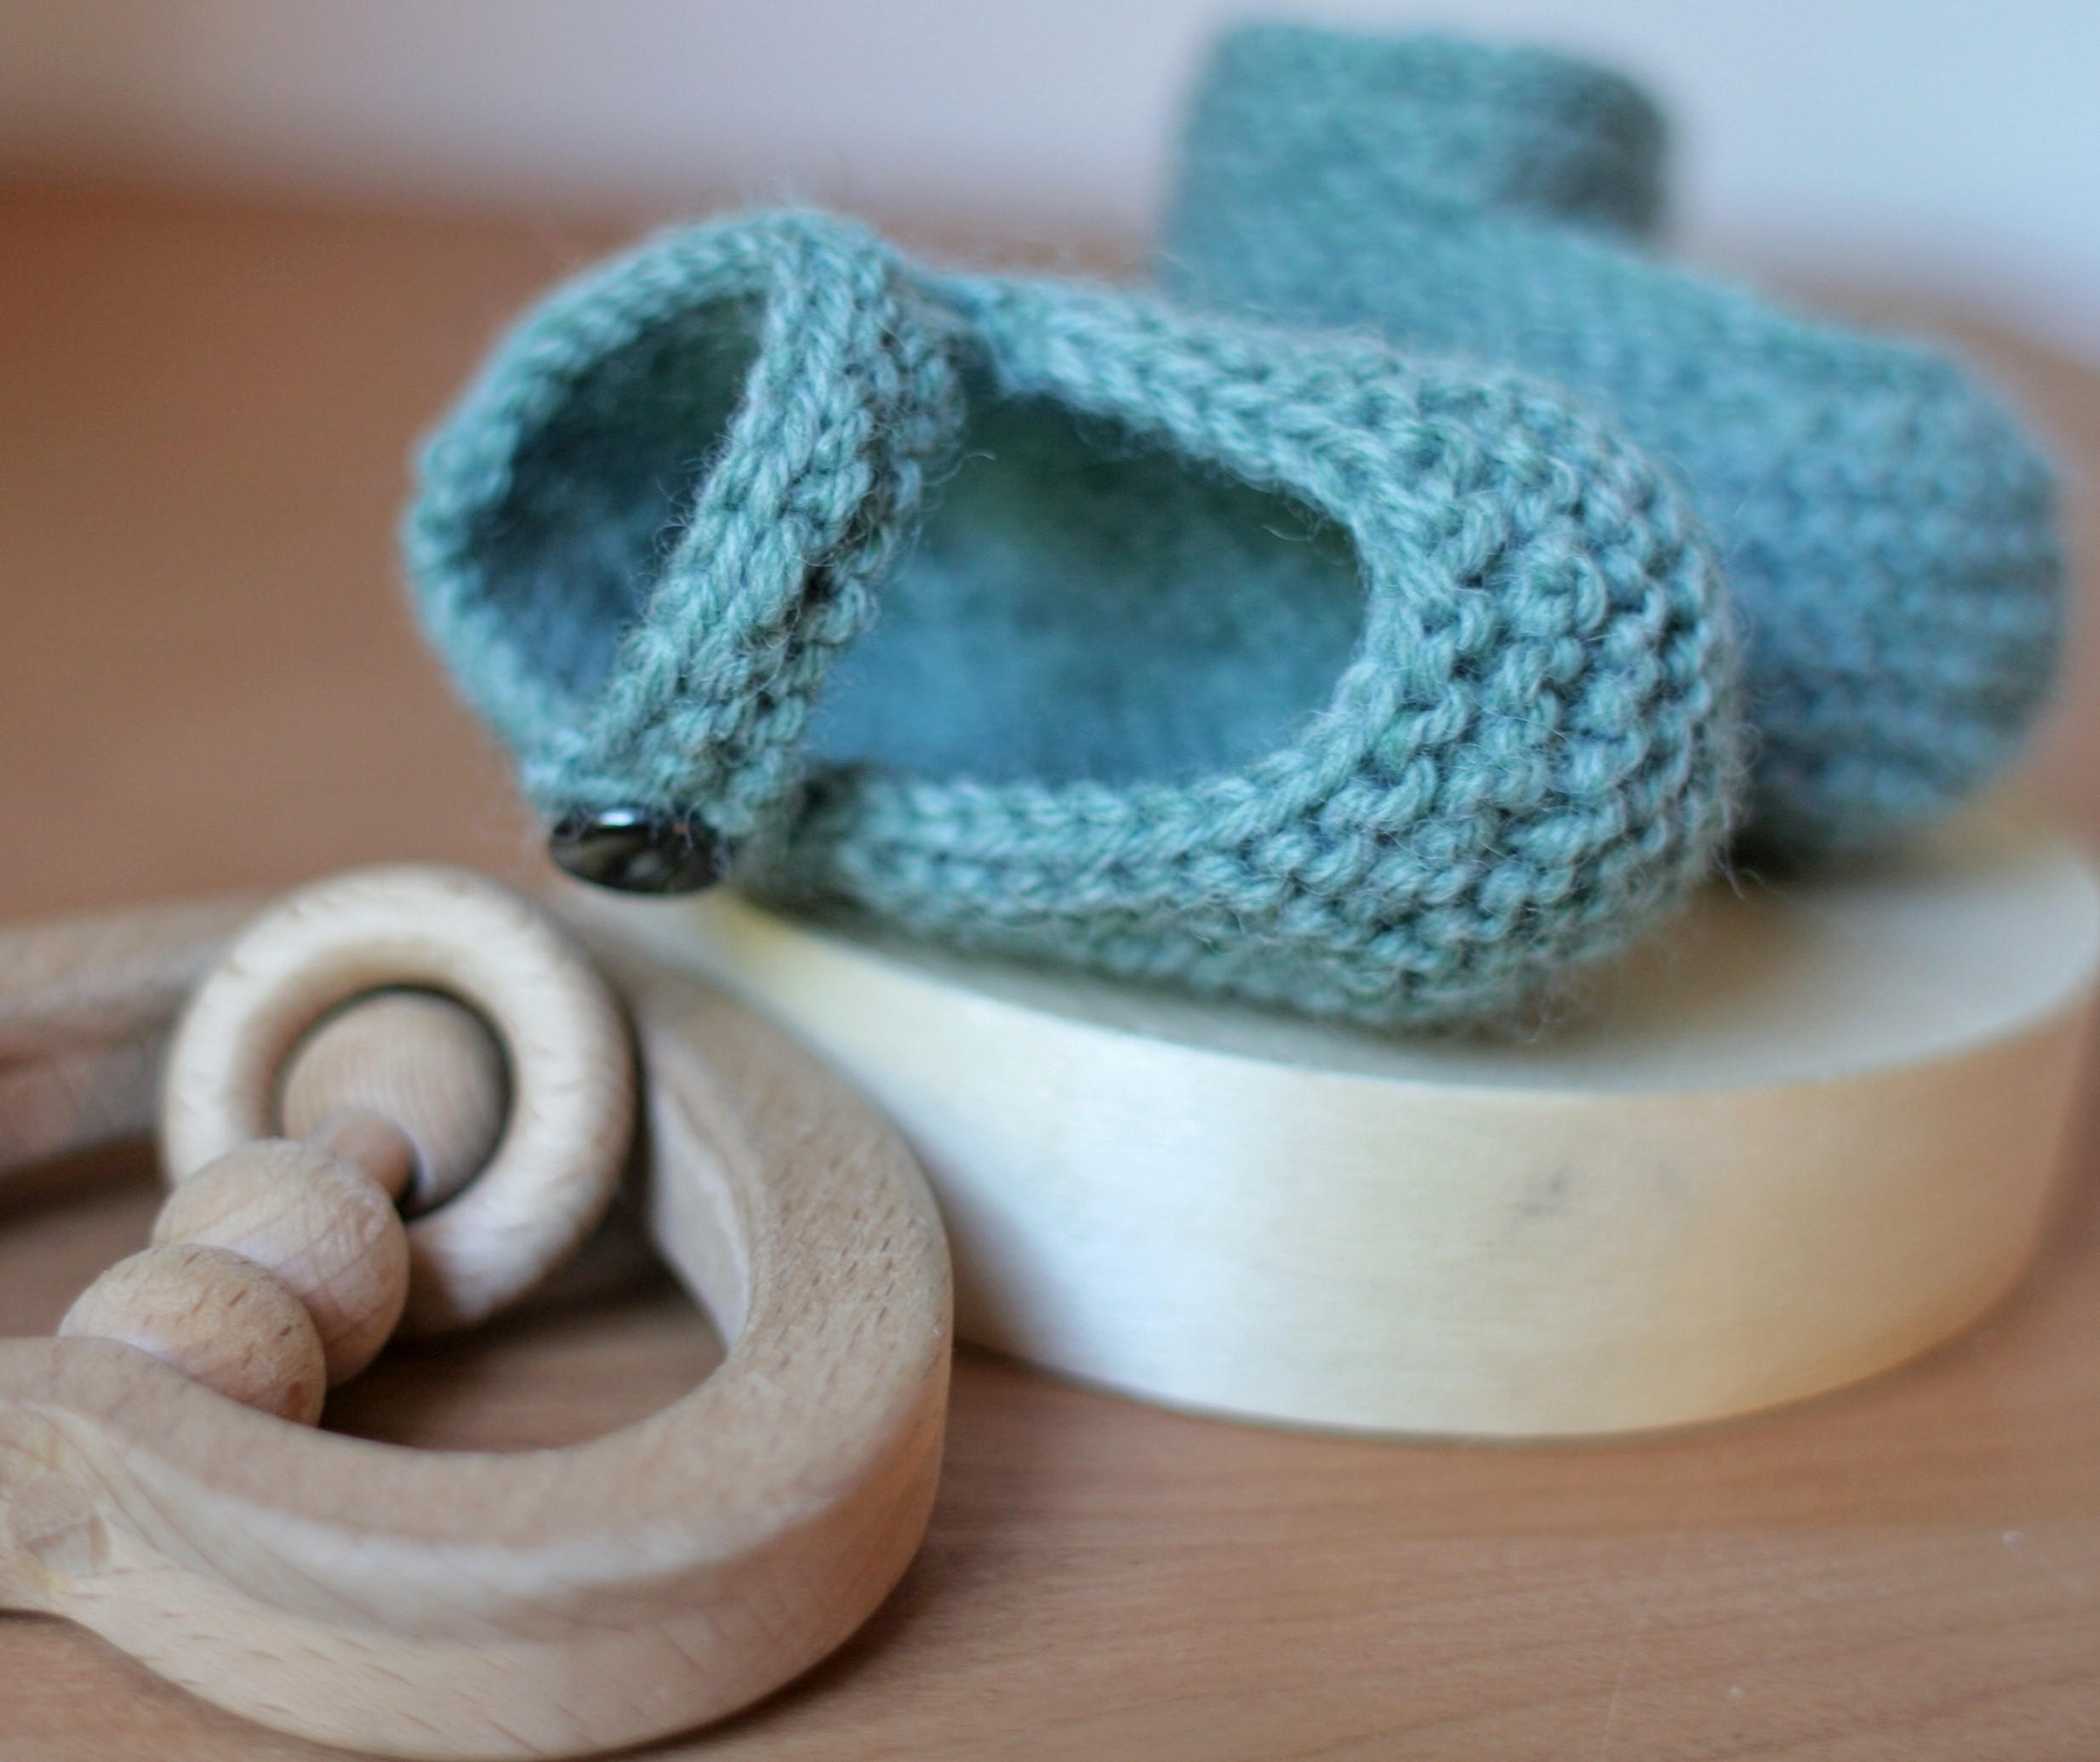 Knit Crochet New Newborn Baby Booties Knitting Patterns Free Of New 49 Pictures Knit Crochet